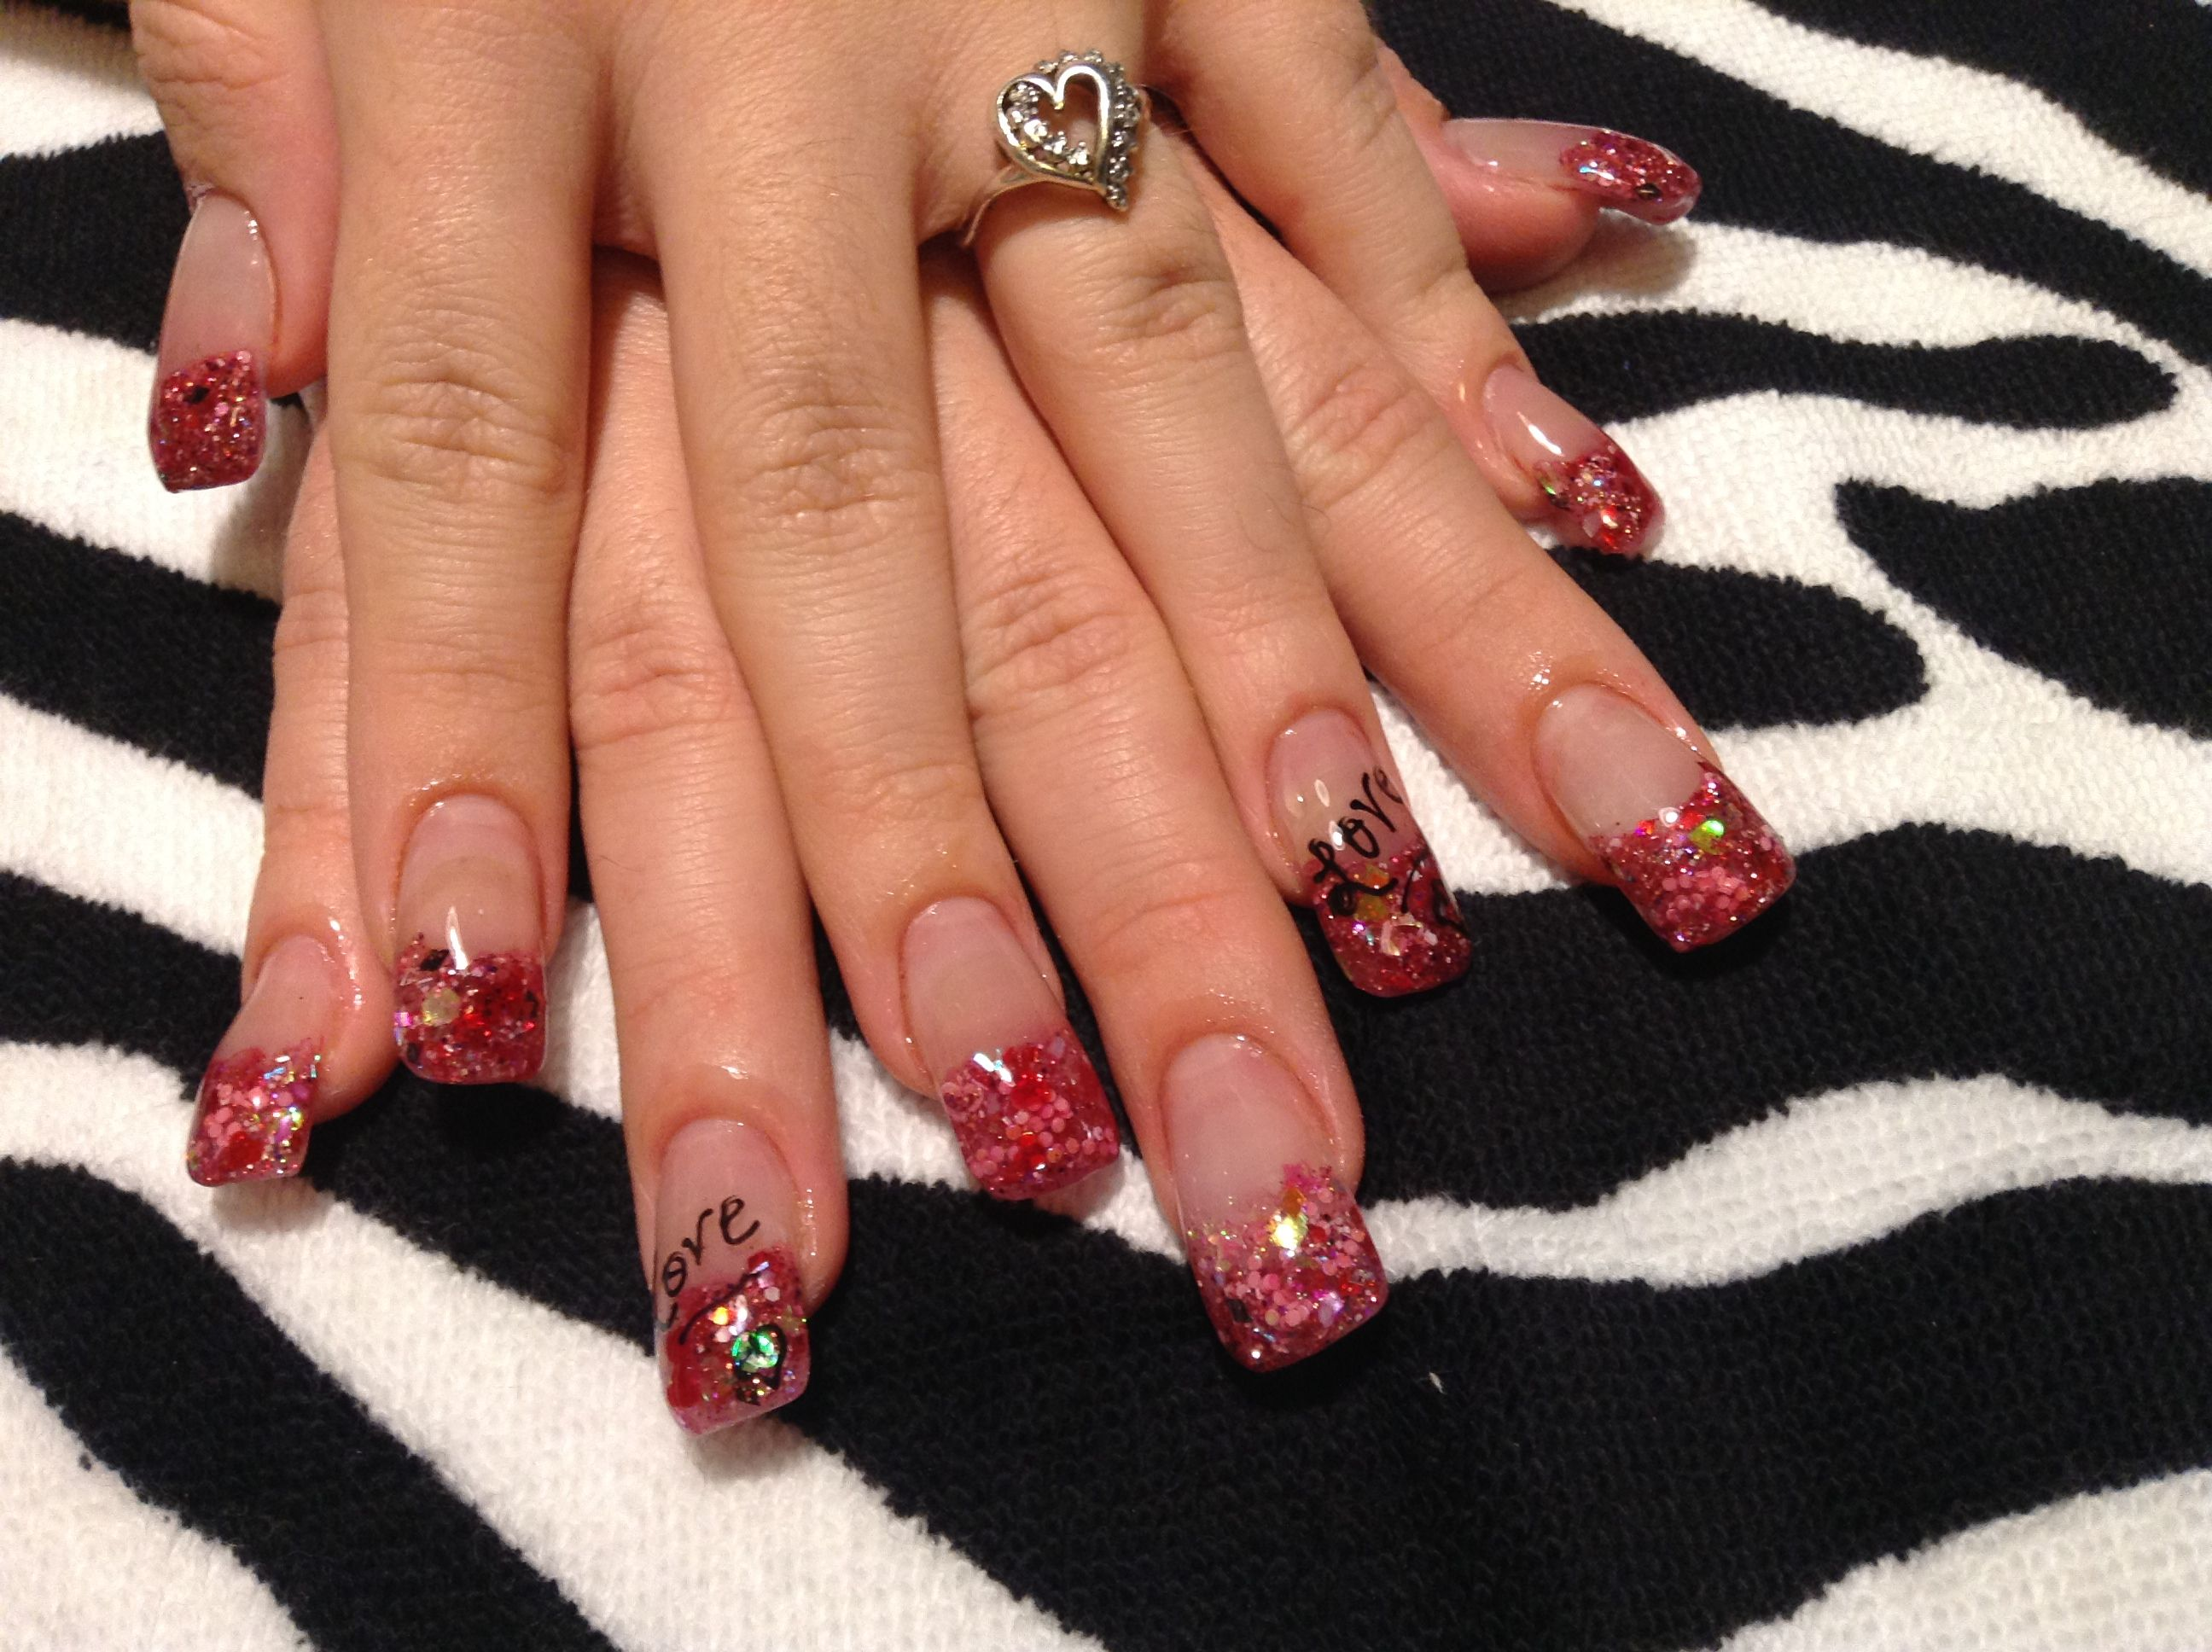 Stylish Nail Art For Valentines Day 2014 For Women Ideas Jpg 2592 1936 Valentine Nail Art Stylish Nails Art Valentines Nails